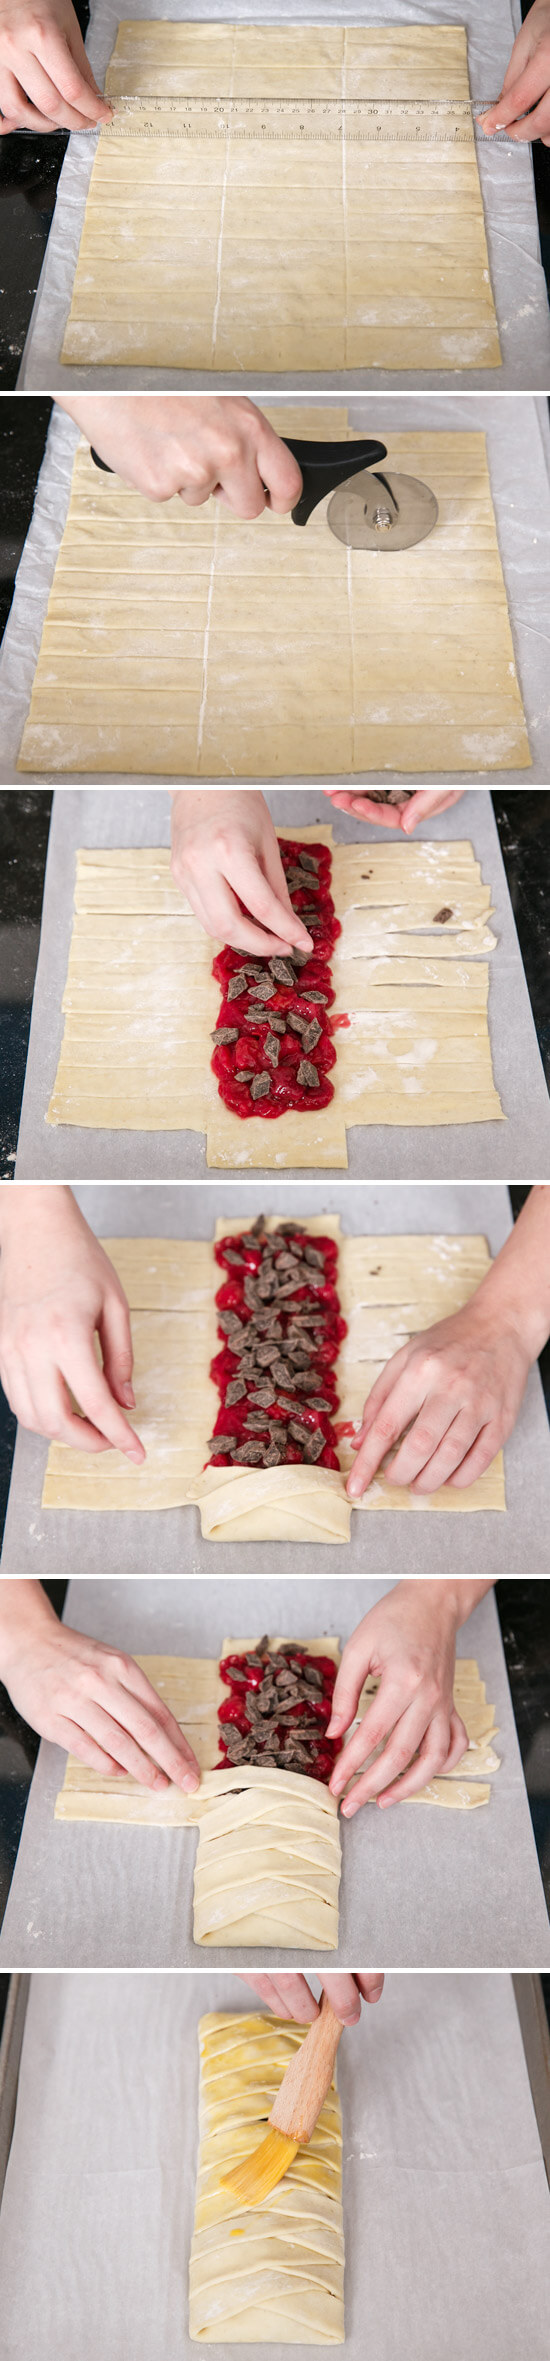 How to Make a Braided Danish Pastry